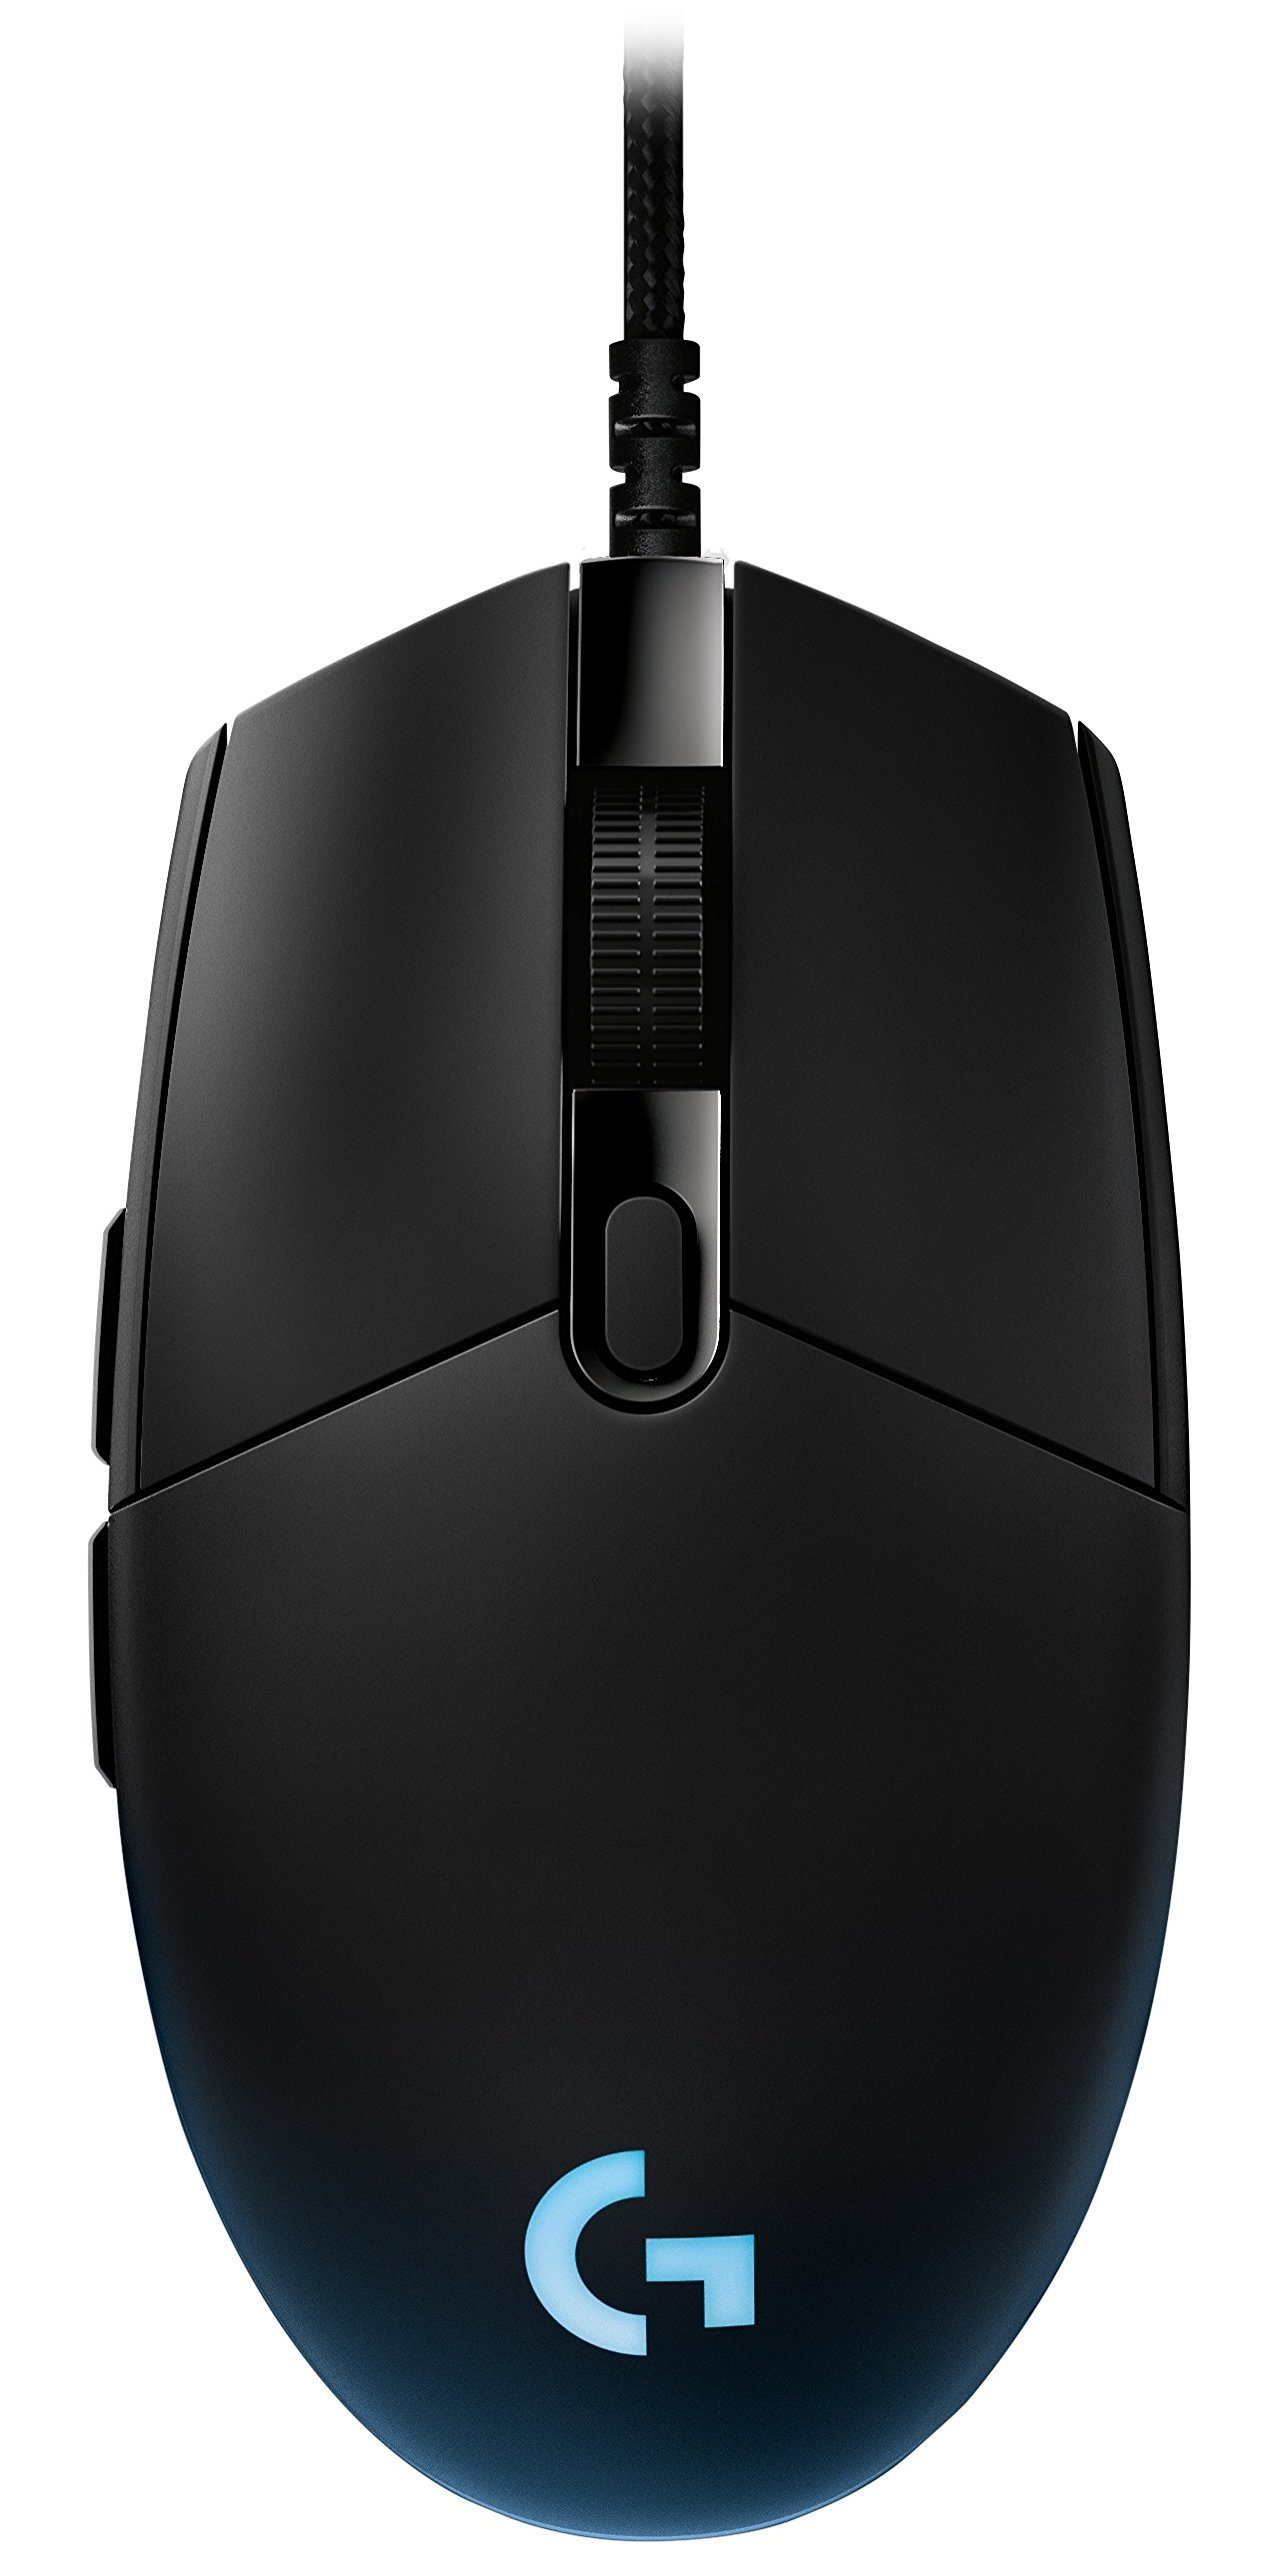 Logitech G Pro Gaming FPS Mouse with Advanced Gaming Sensor for Competitive Play